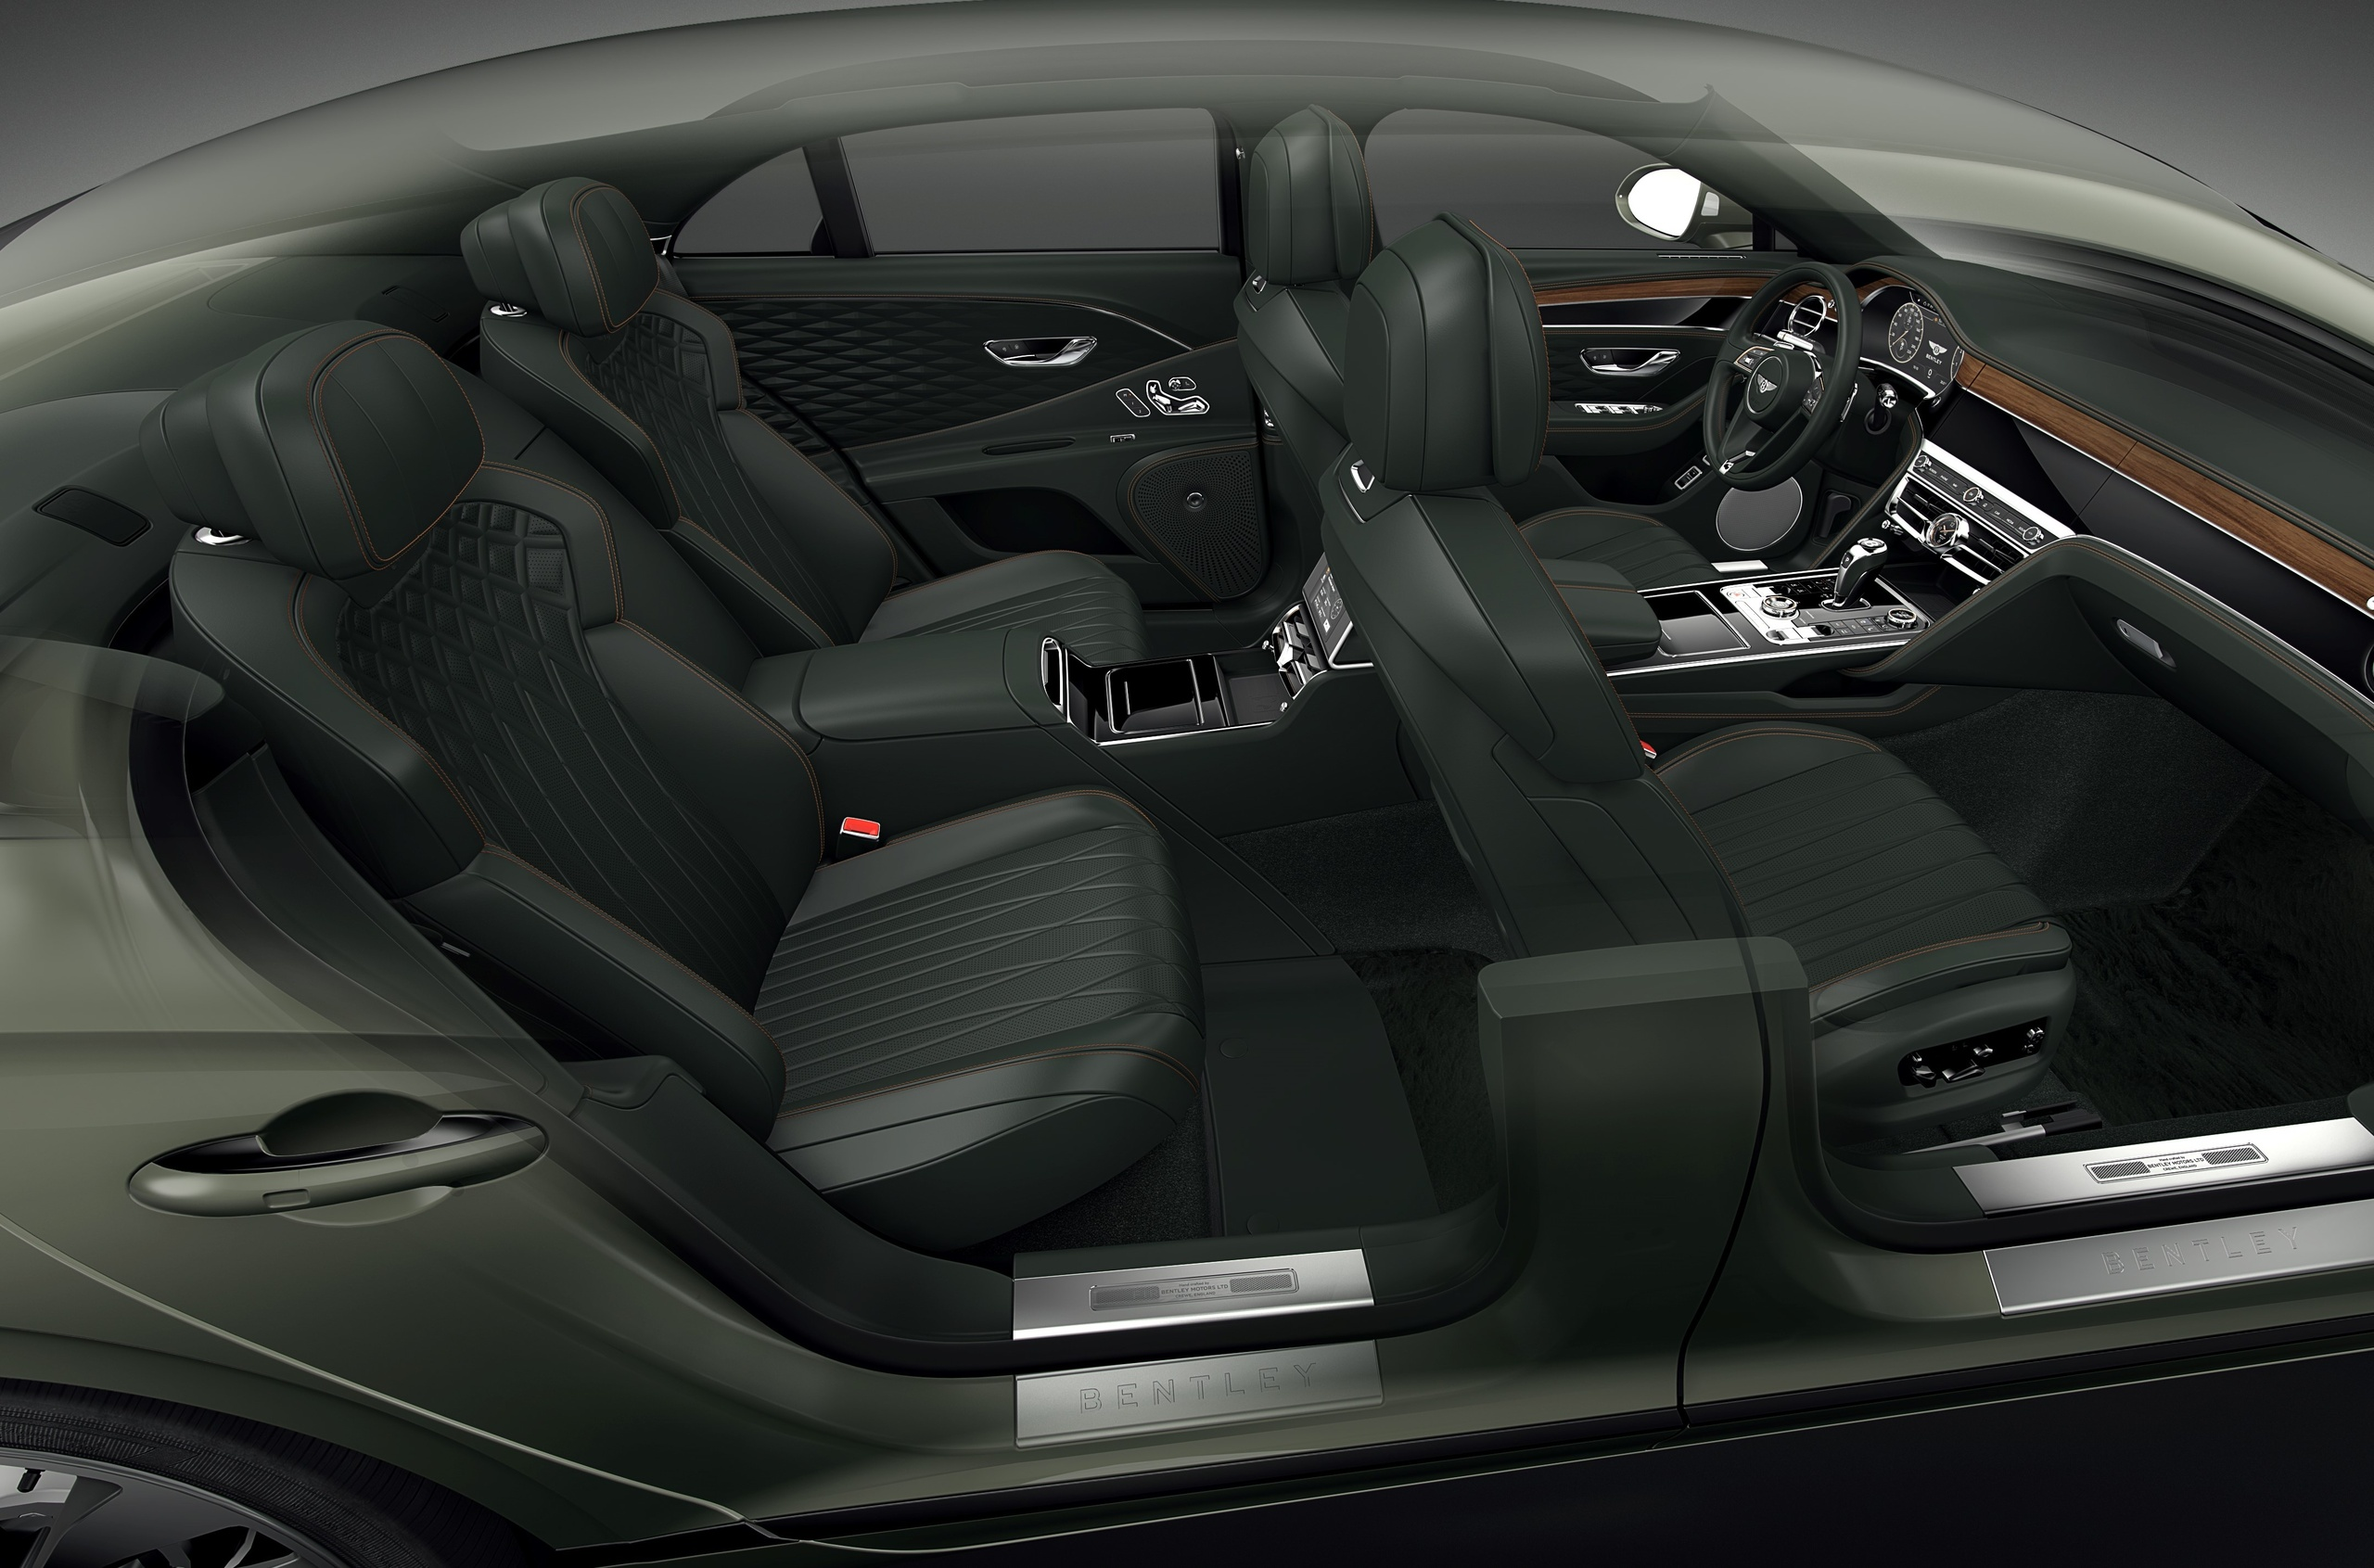 Bentley has spruced up its Flying Spur lineup with quite a few new options, including two separate back seats instead of a sofa, semi-aniline cross-stitched leather trim, and more paints to choose from.